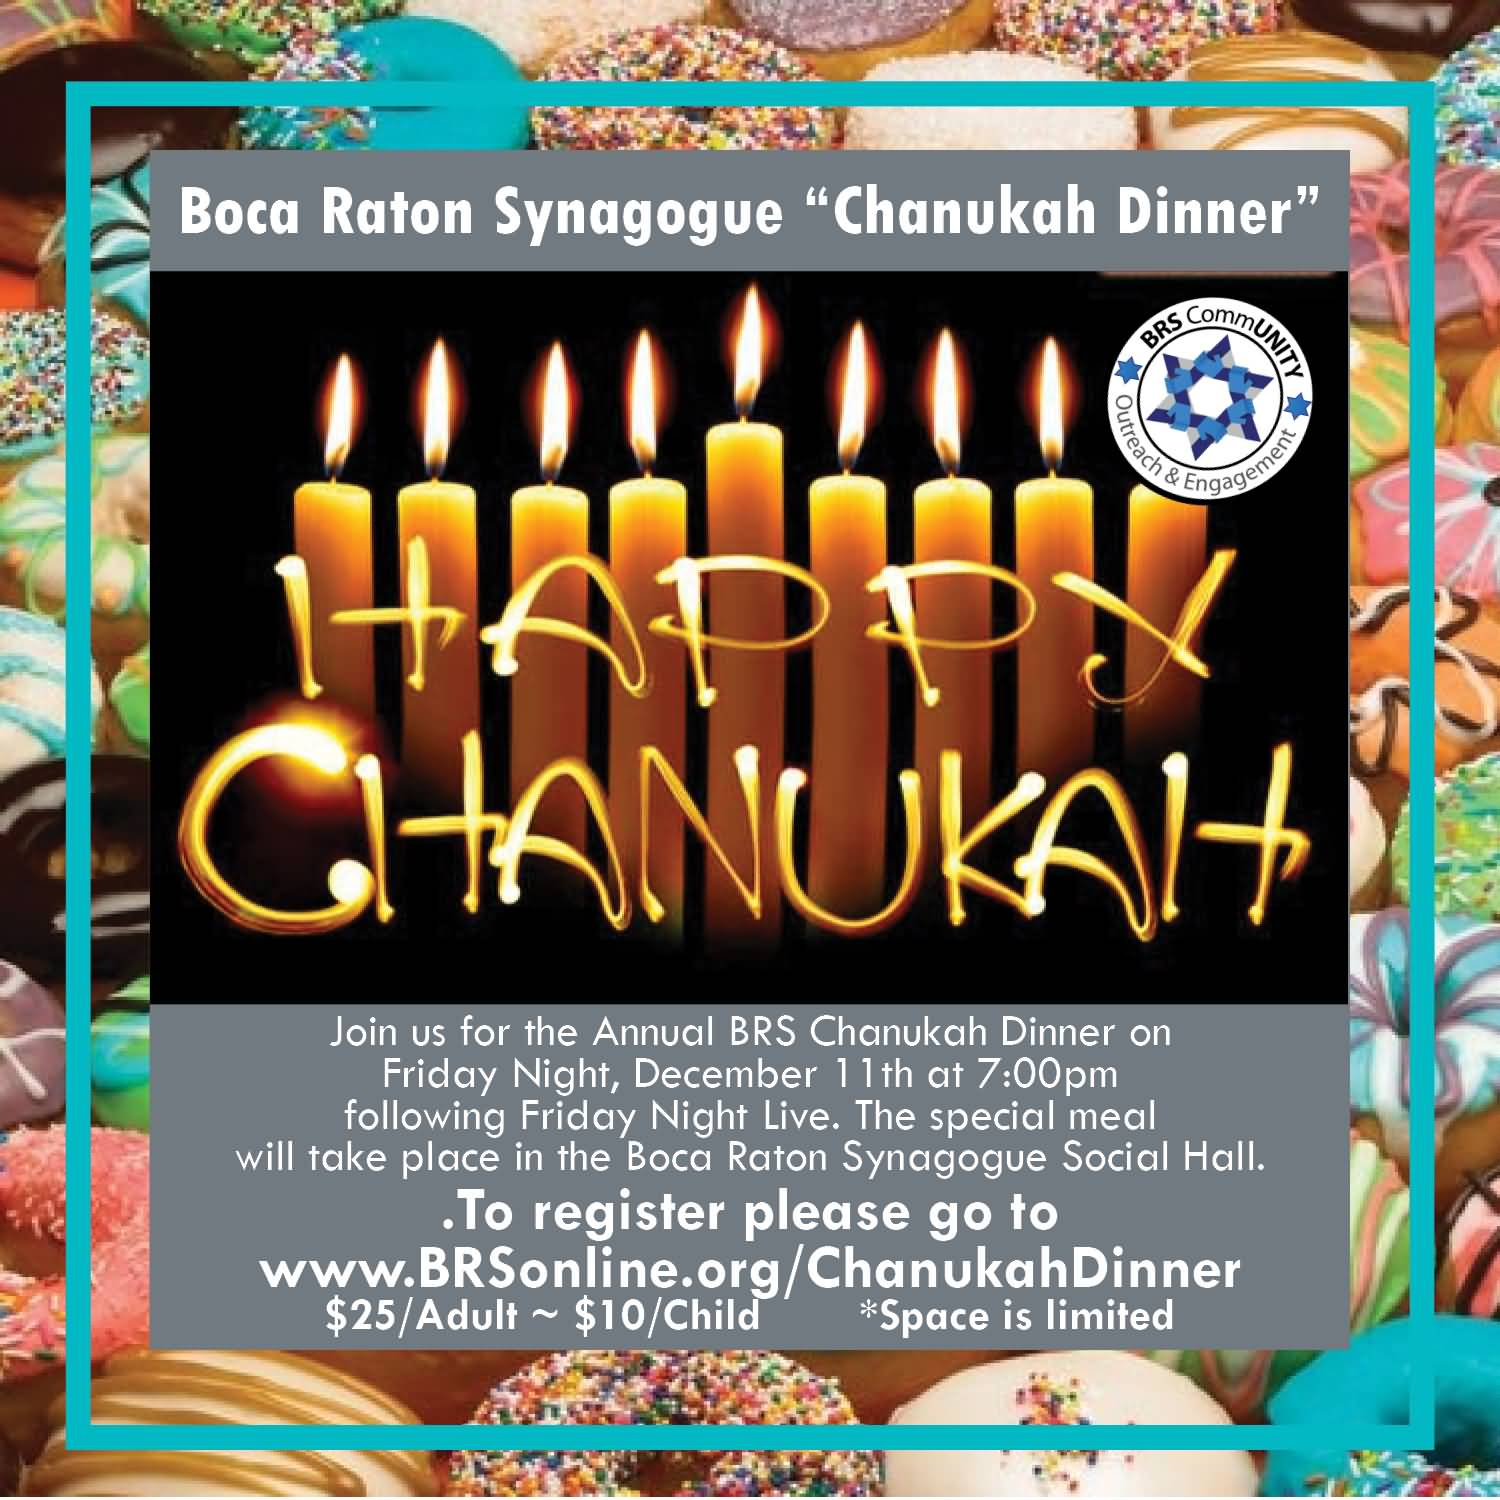 50 happy chanukah wish pictures and photos happy chanukah greeting ecard m4hsunfo